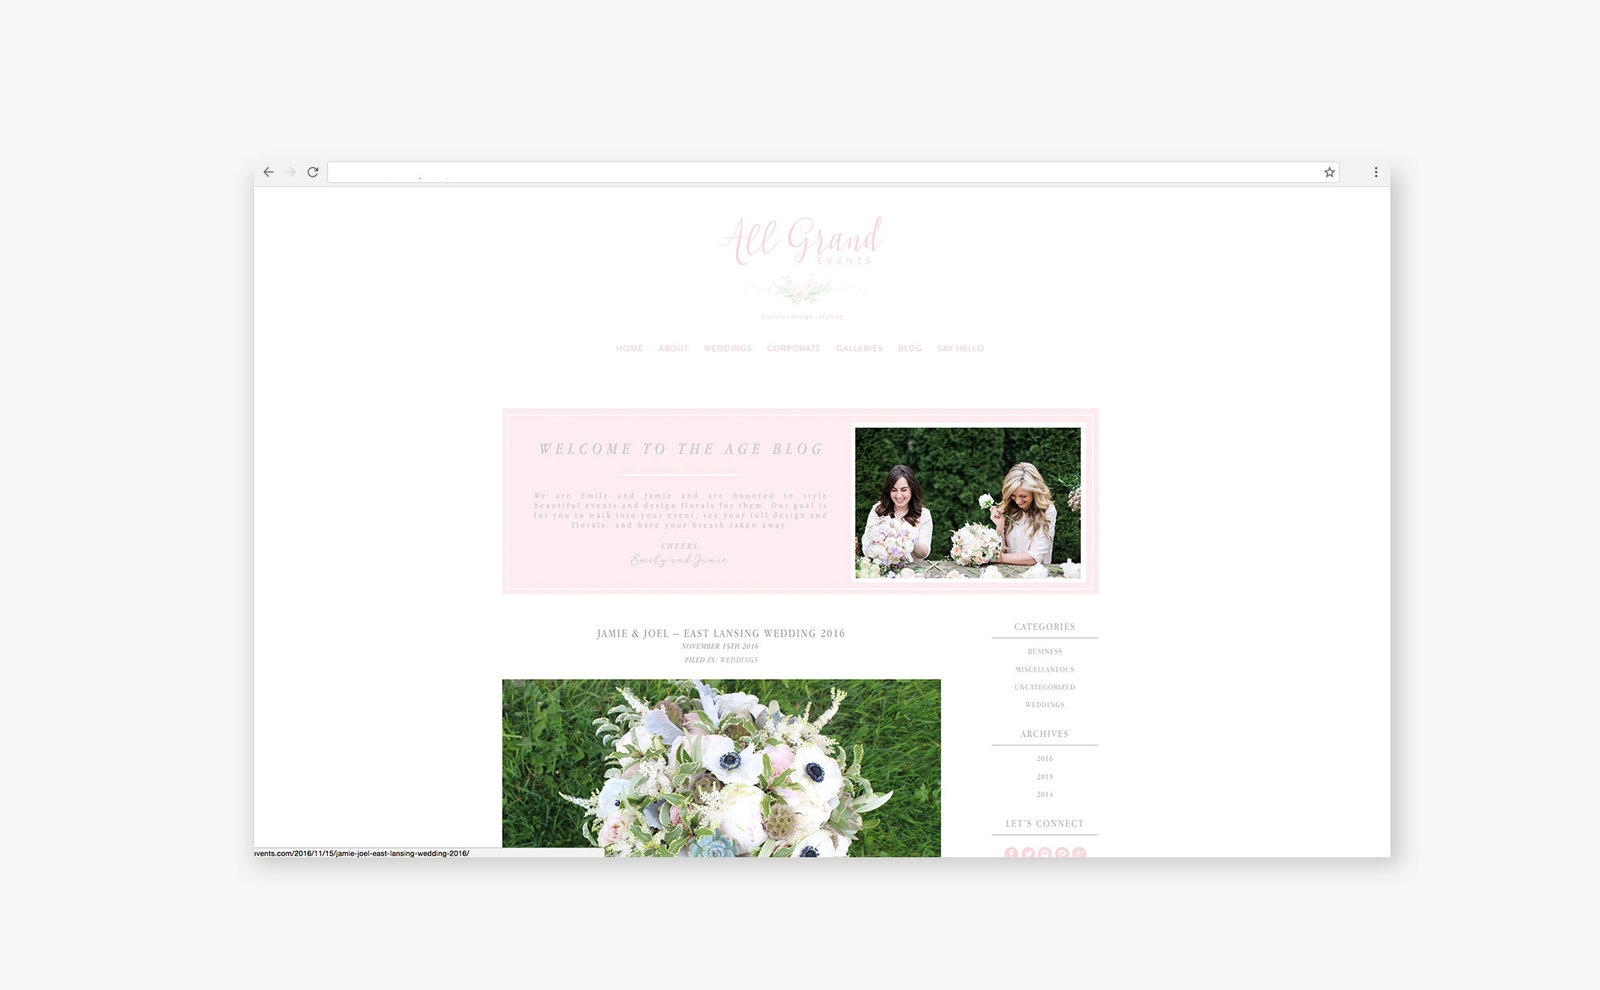 branding-for-florists-web-design-all-grand-events-05